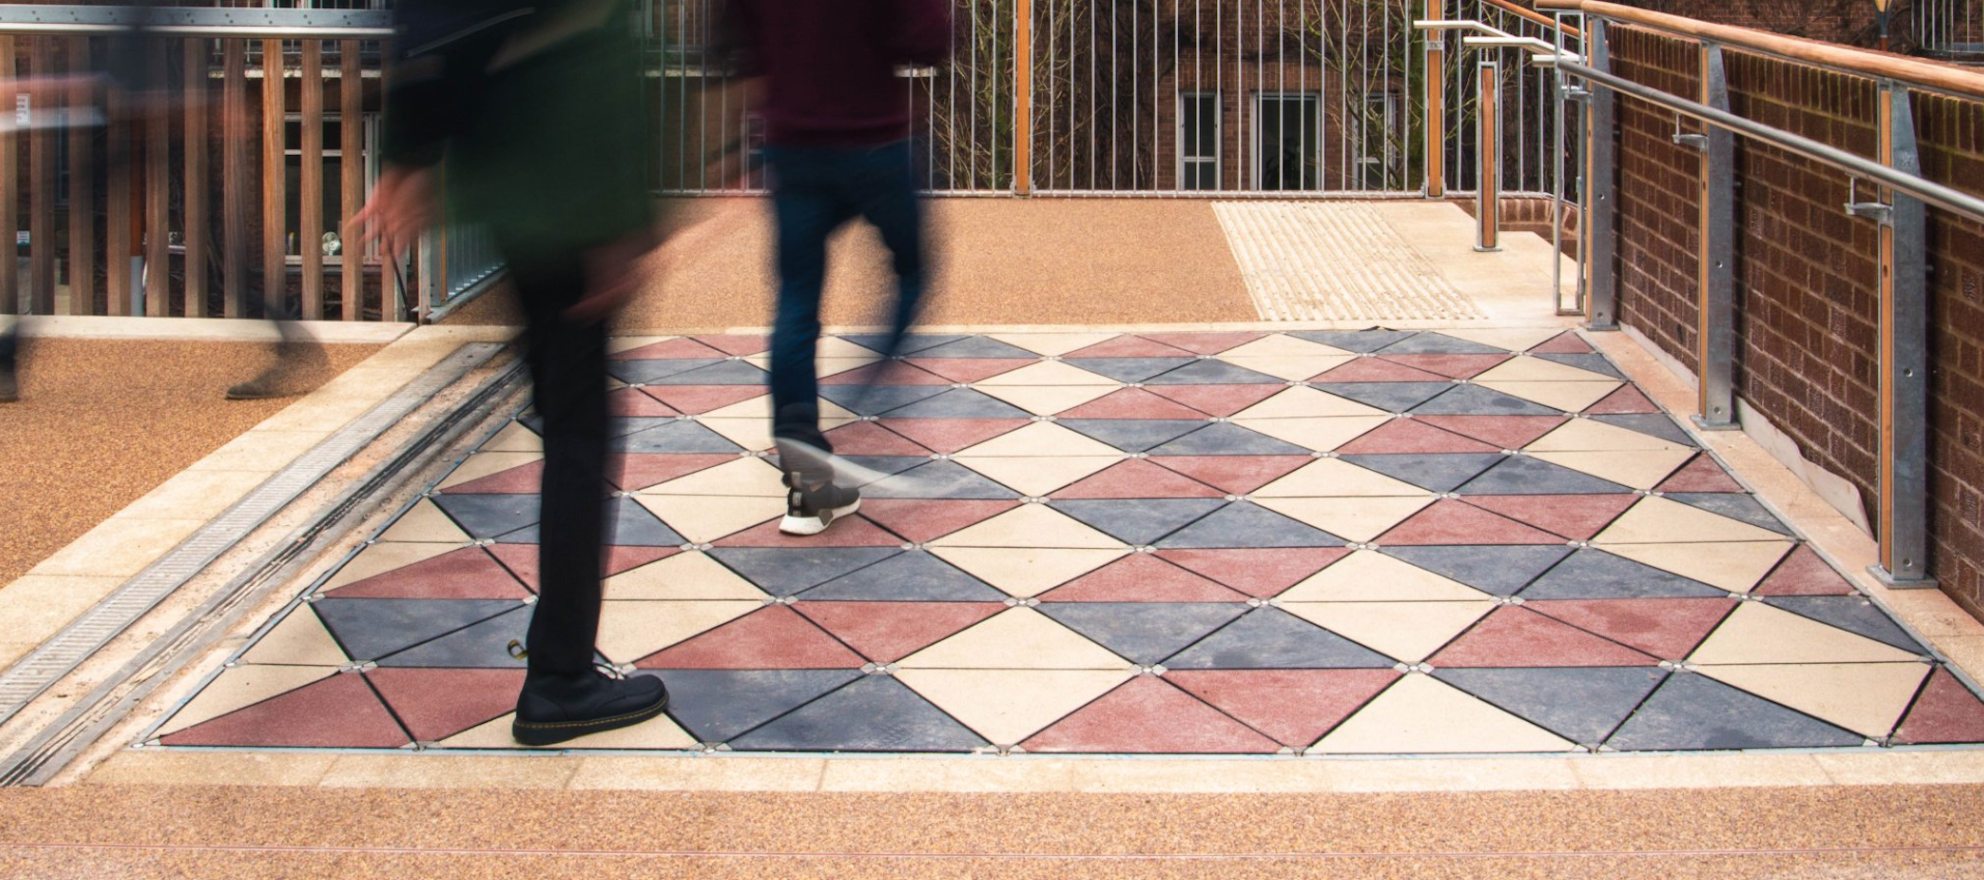 Company that creates electricity from footsteps raises $3.2M